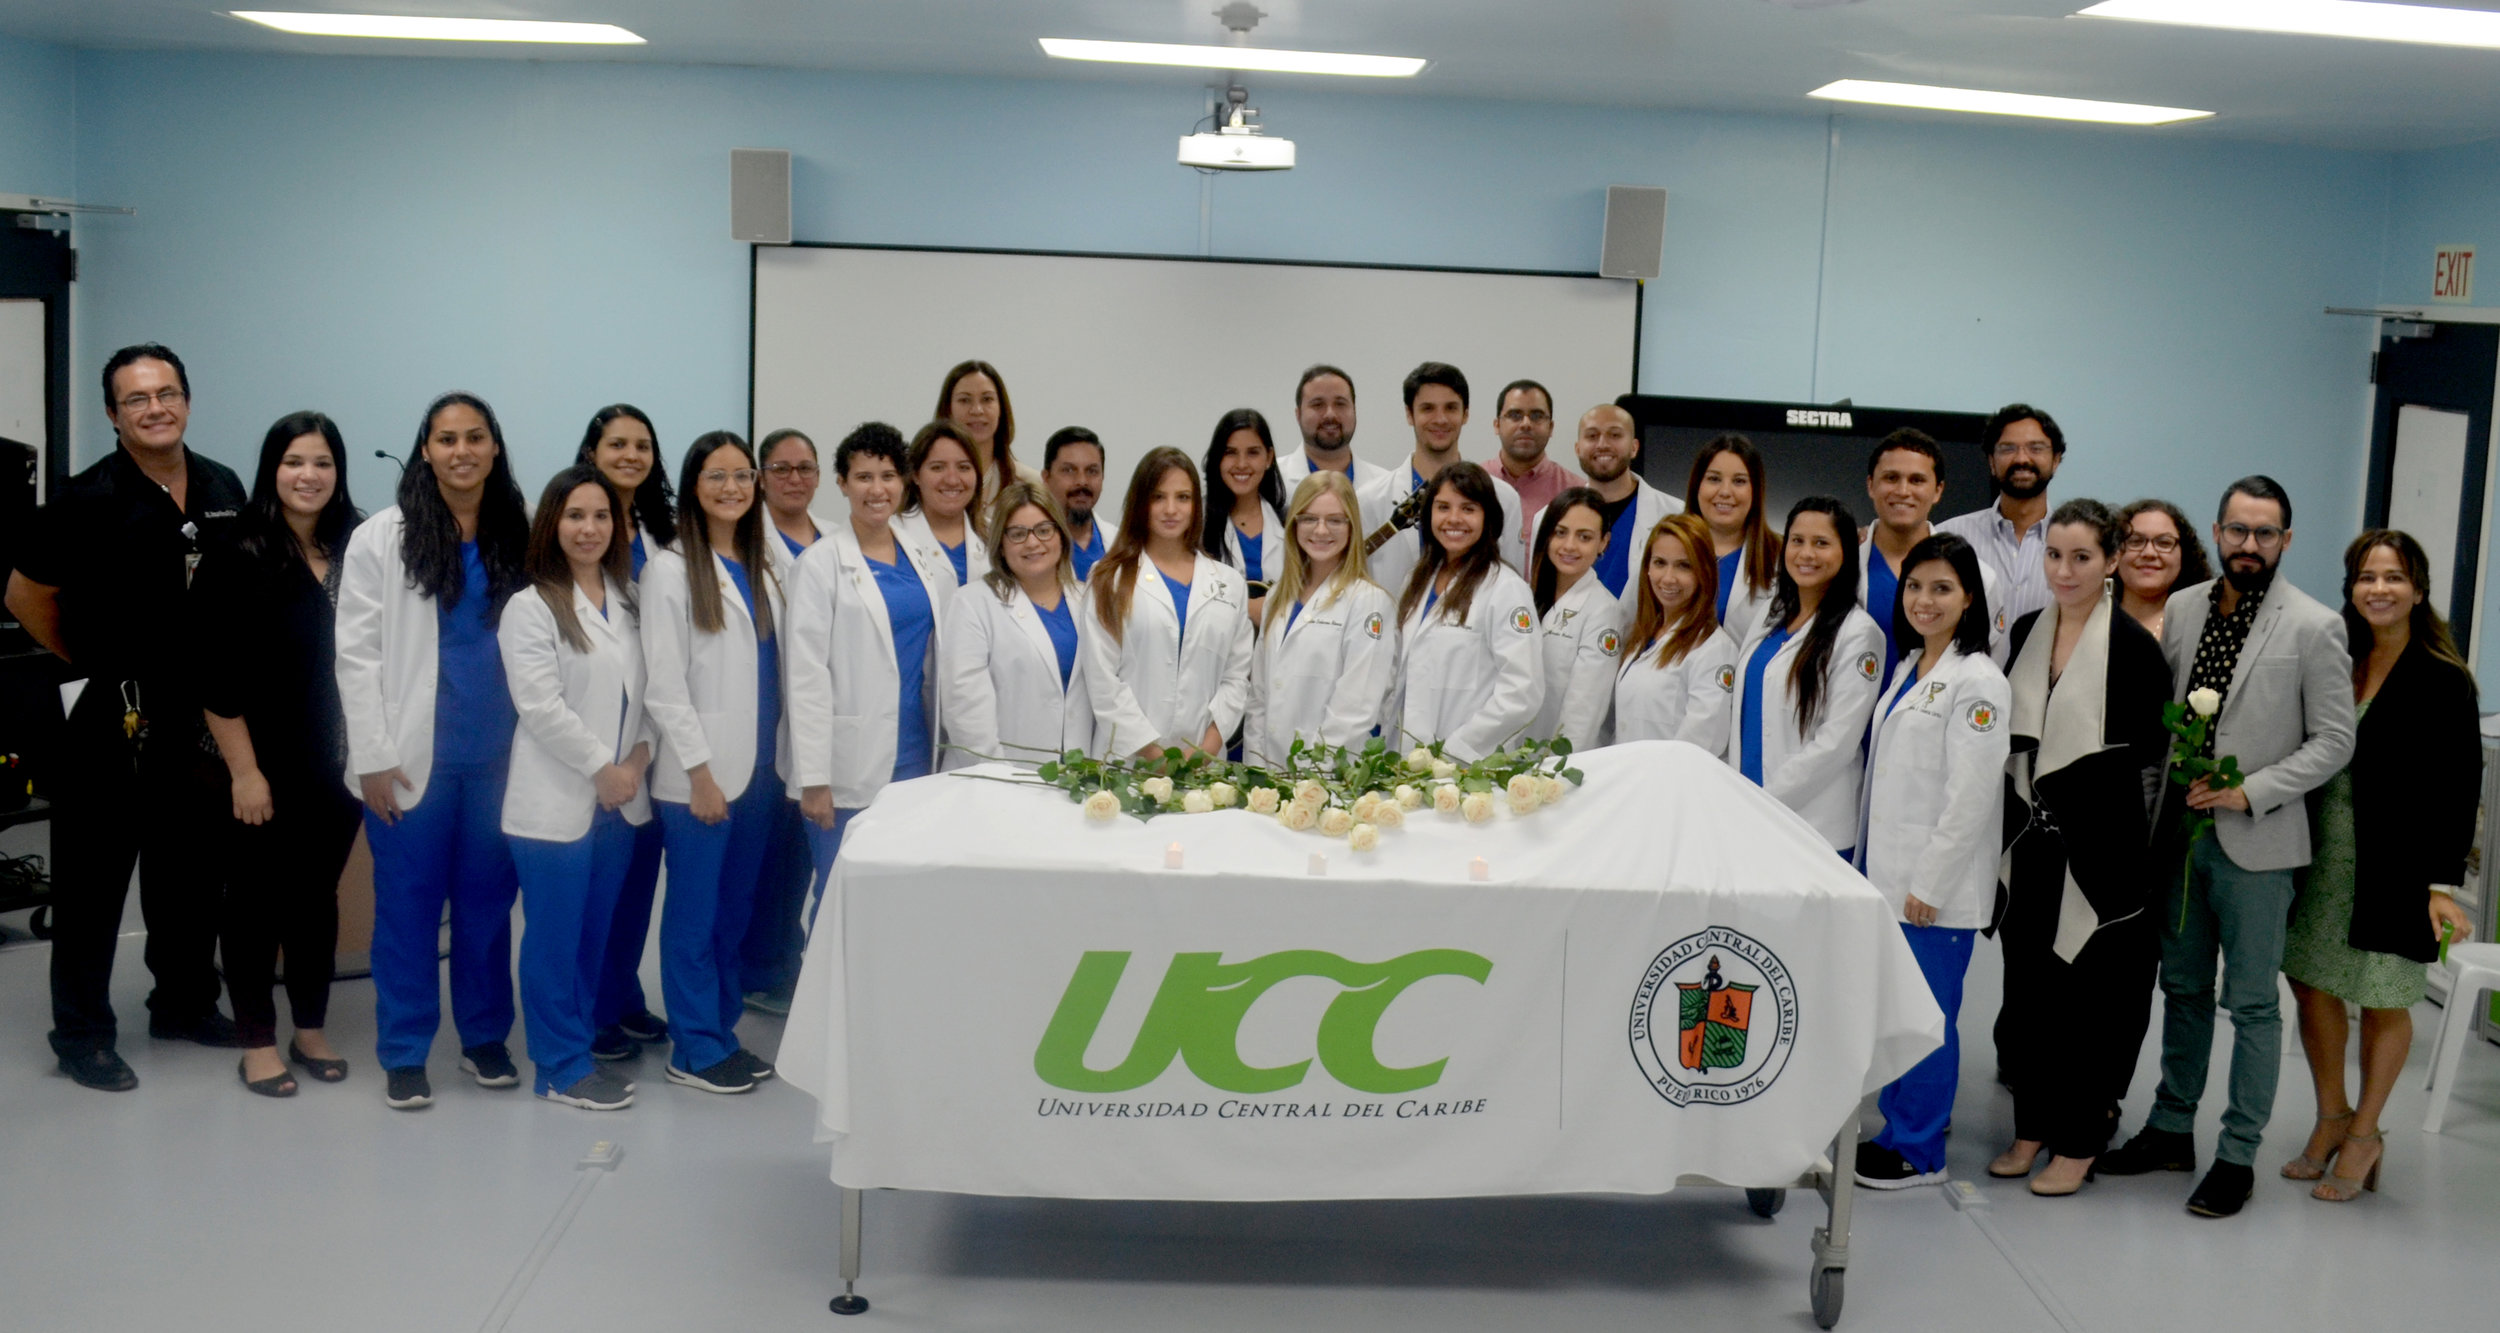 The first class of chiropractic at Universidad Central del Caribe